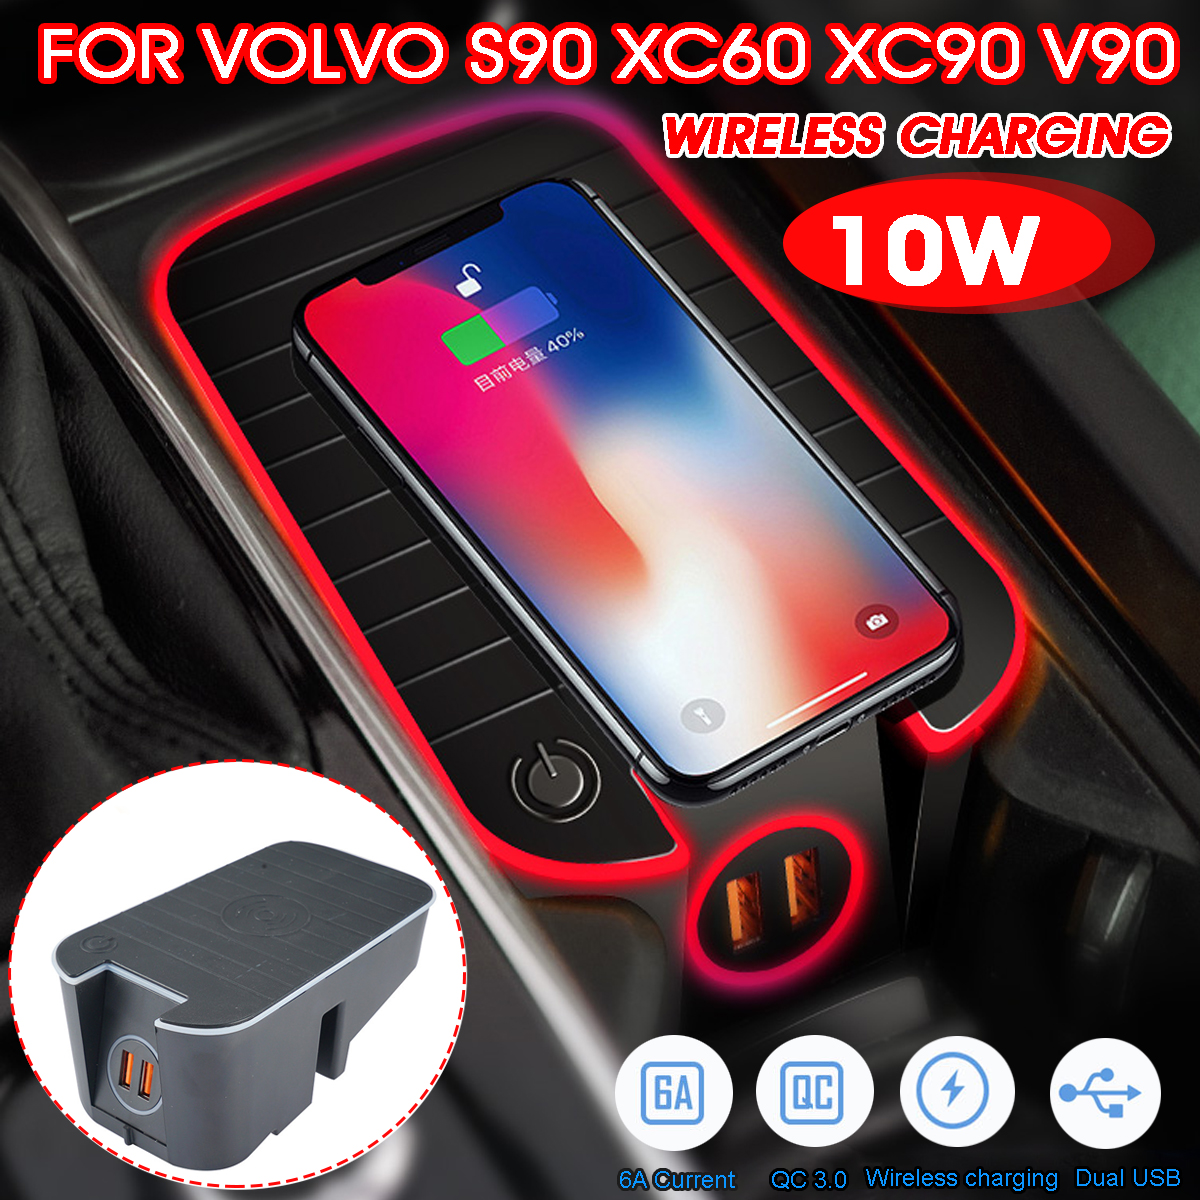 10W 6A QC3.0 Wireless Charger Car Fast Charging For For Volvo S90 XC60 XC90 V90